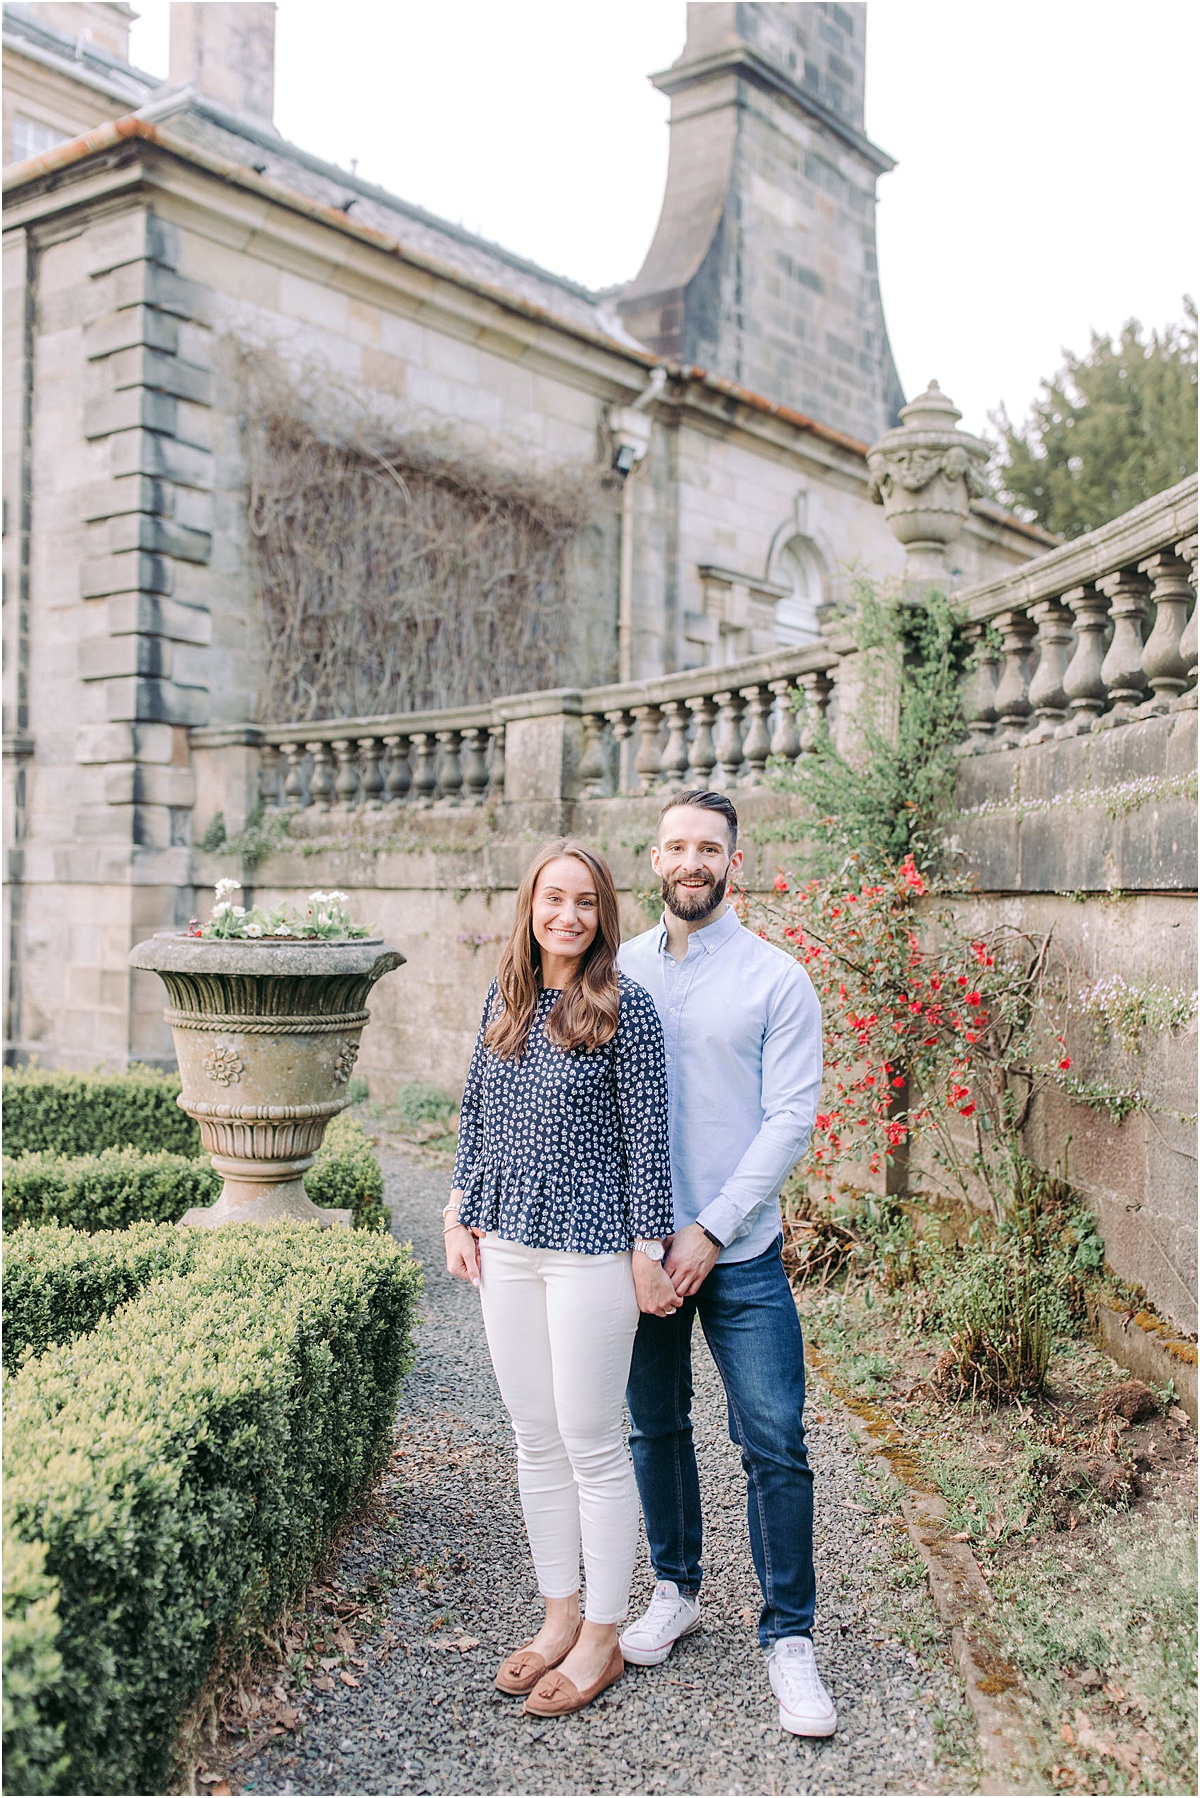 The Gibsons,engagement photographers glasgow,engagement photographers scotland,engagement photography glasgow,natural wedding photographers,